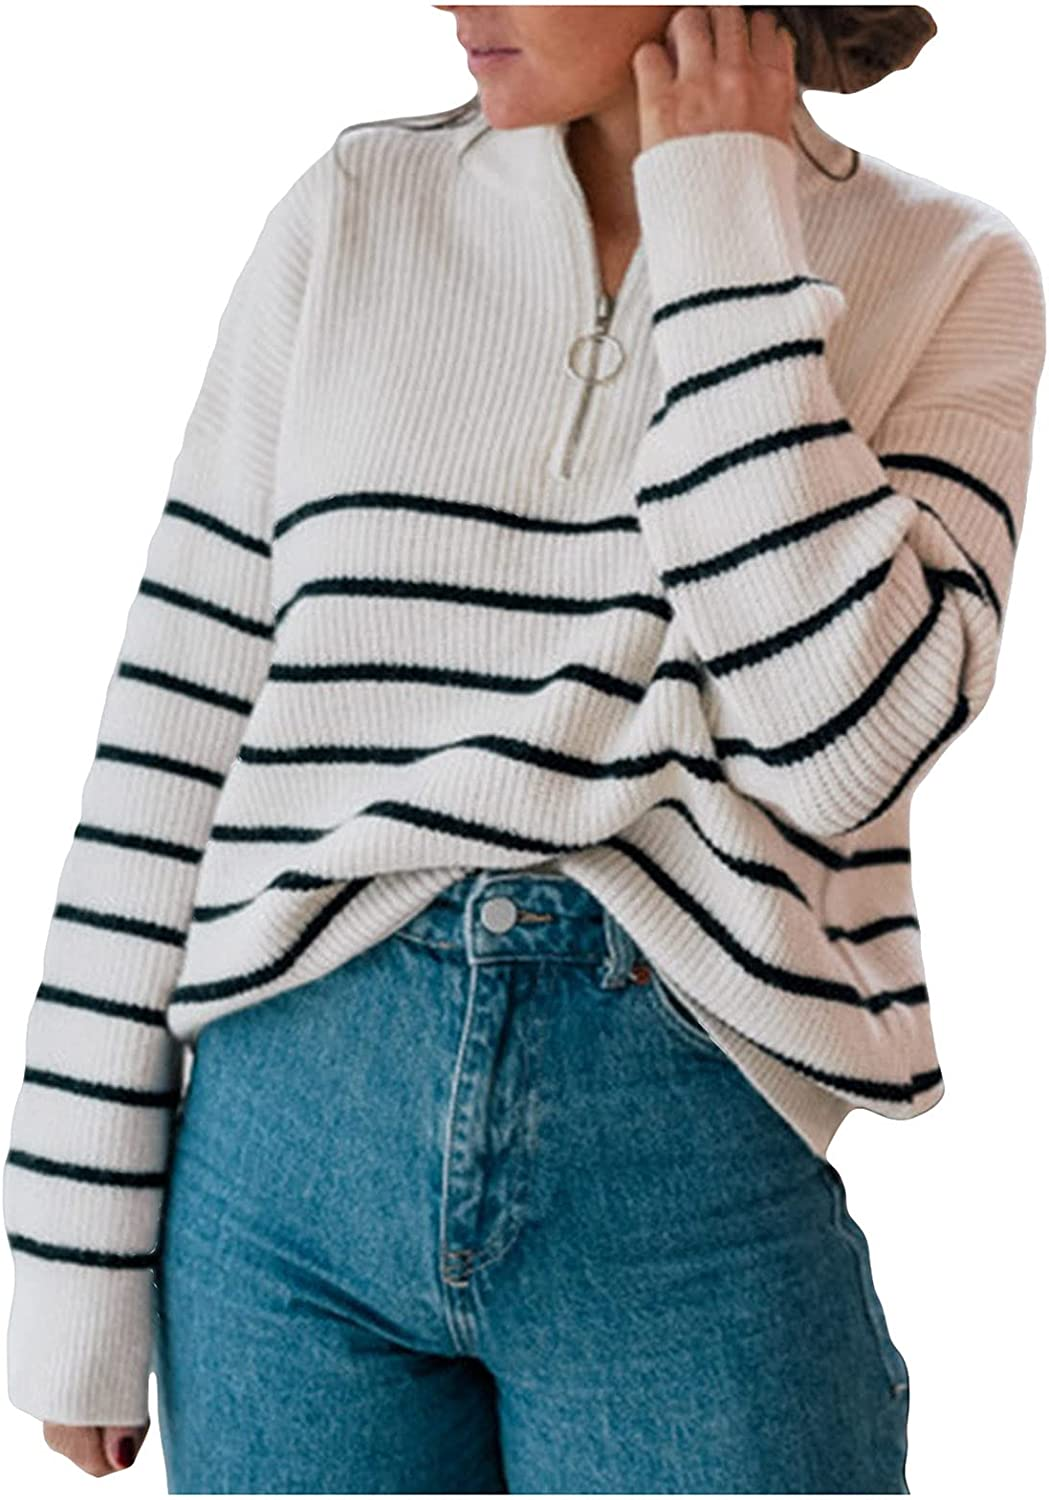 Winter Sweater for Women Long Sleeve Crewneck Knit Sweater Casual Turtleneck Striped Sweaters Loose Pullover Tops